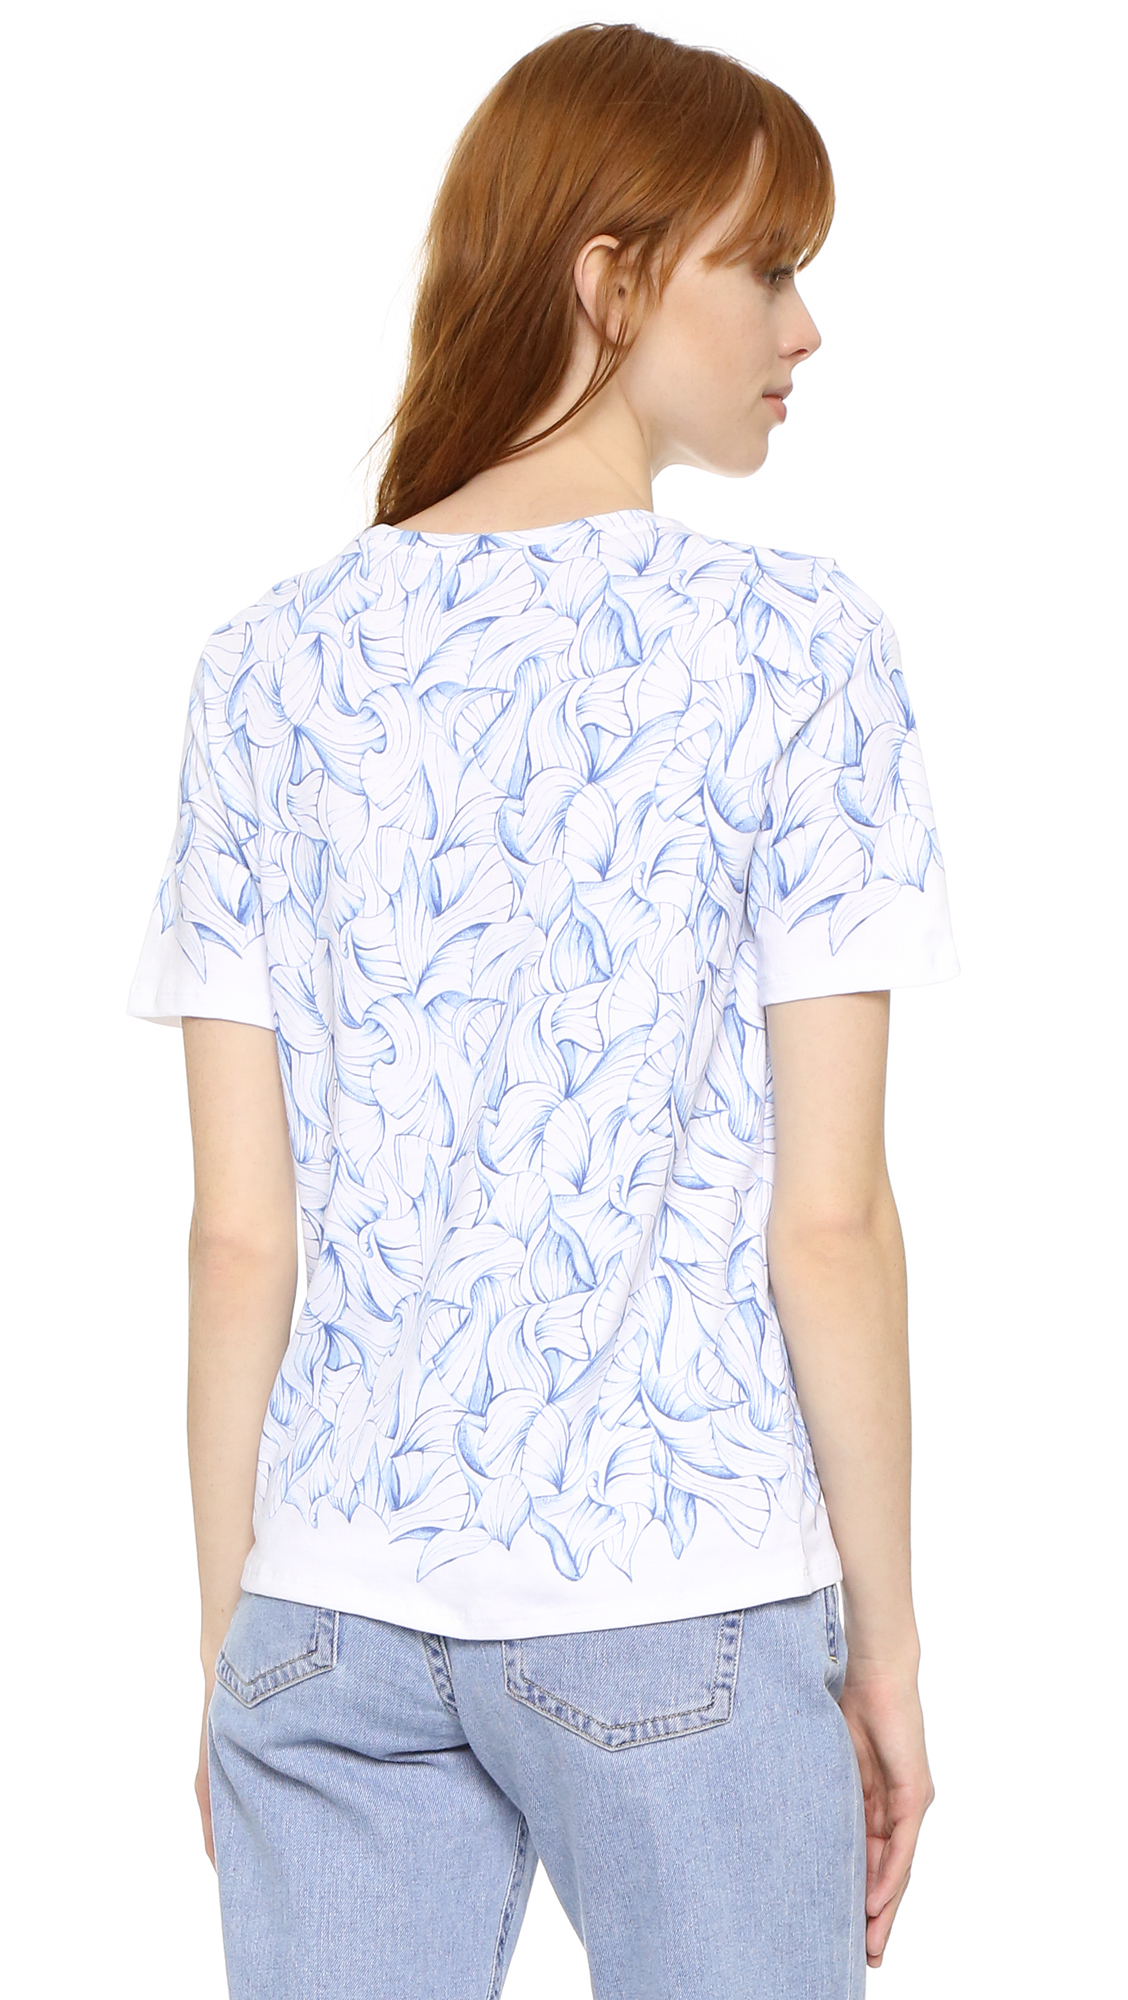 Tory burch libby tee shirt in white lyst for Tory burch t shirt